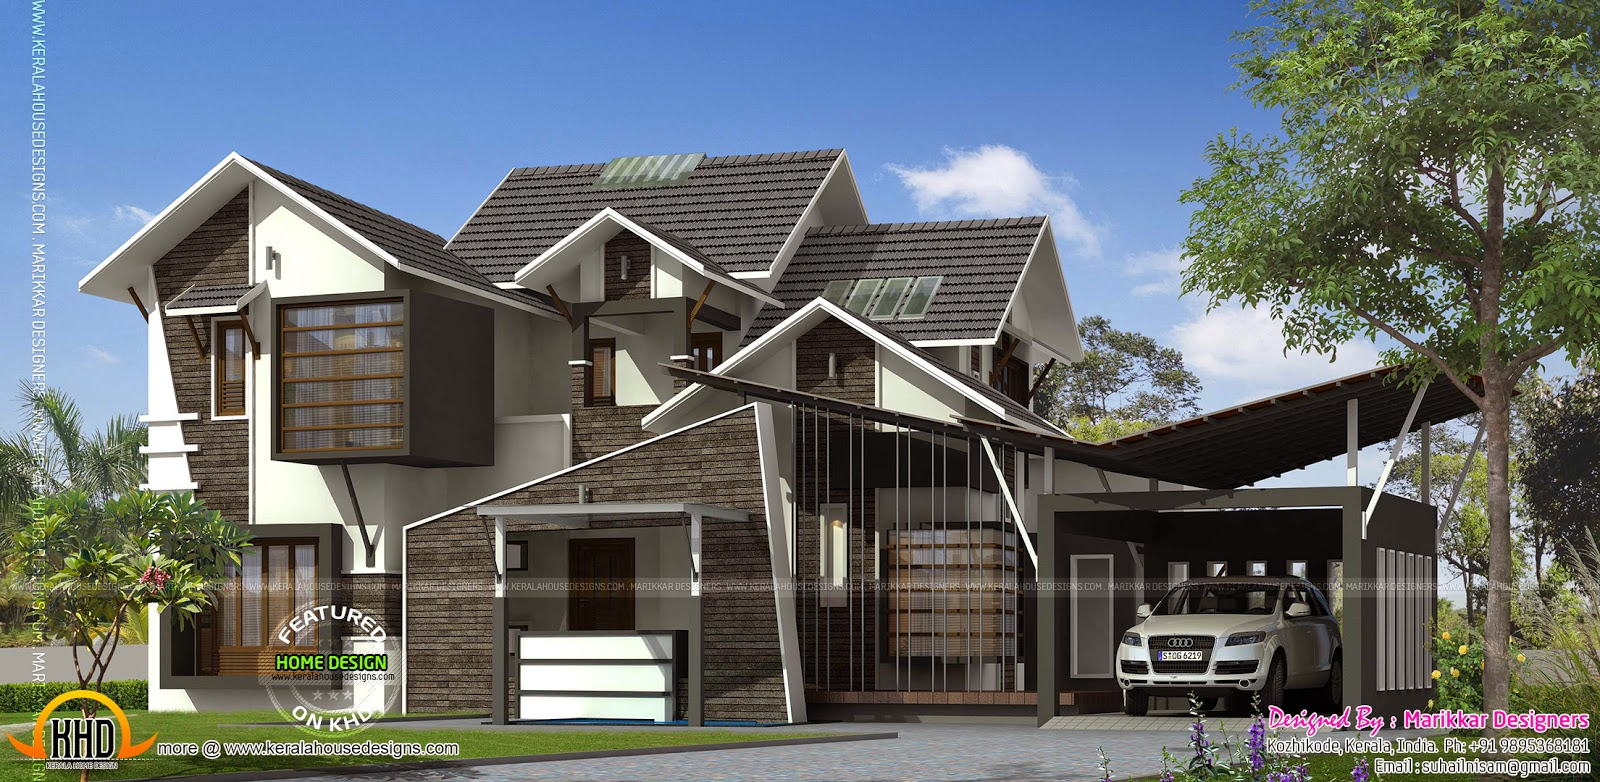 Ultra contemporary house kerala home design and floor plans for Ultra modern house design plans